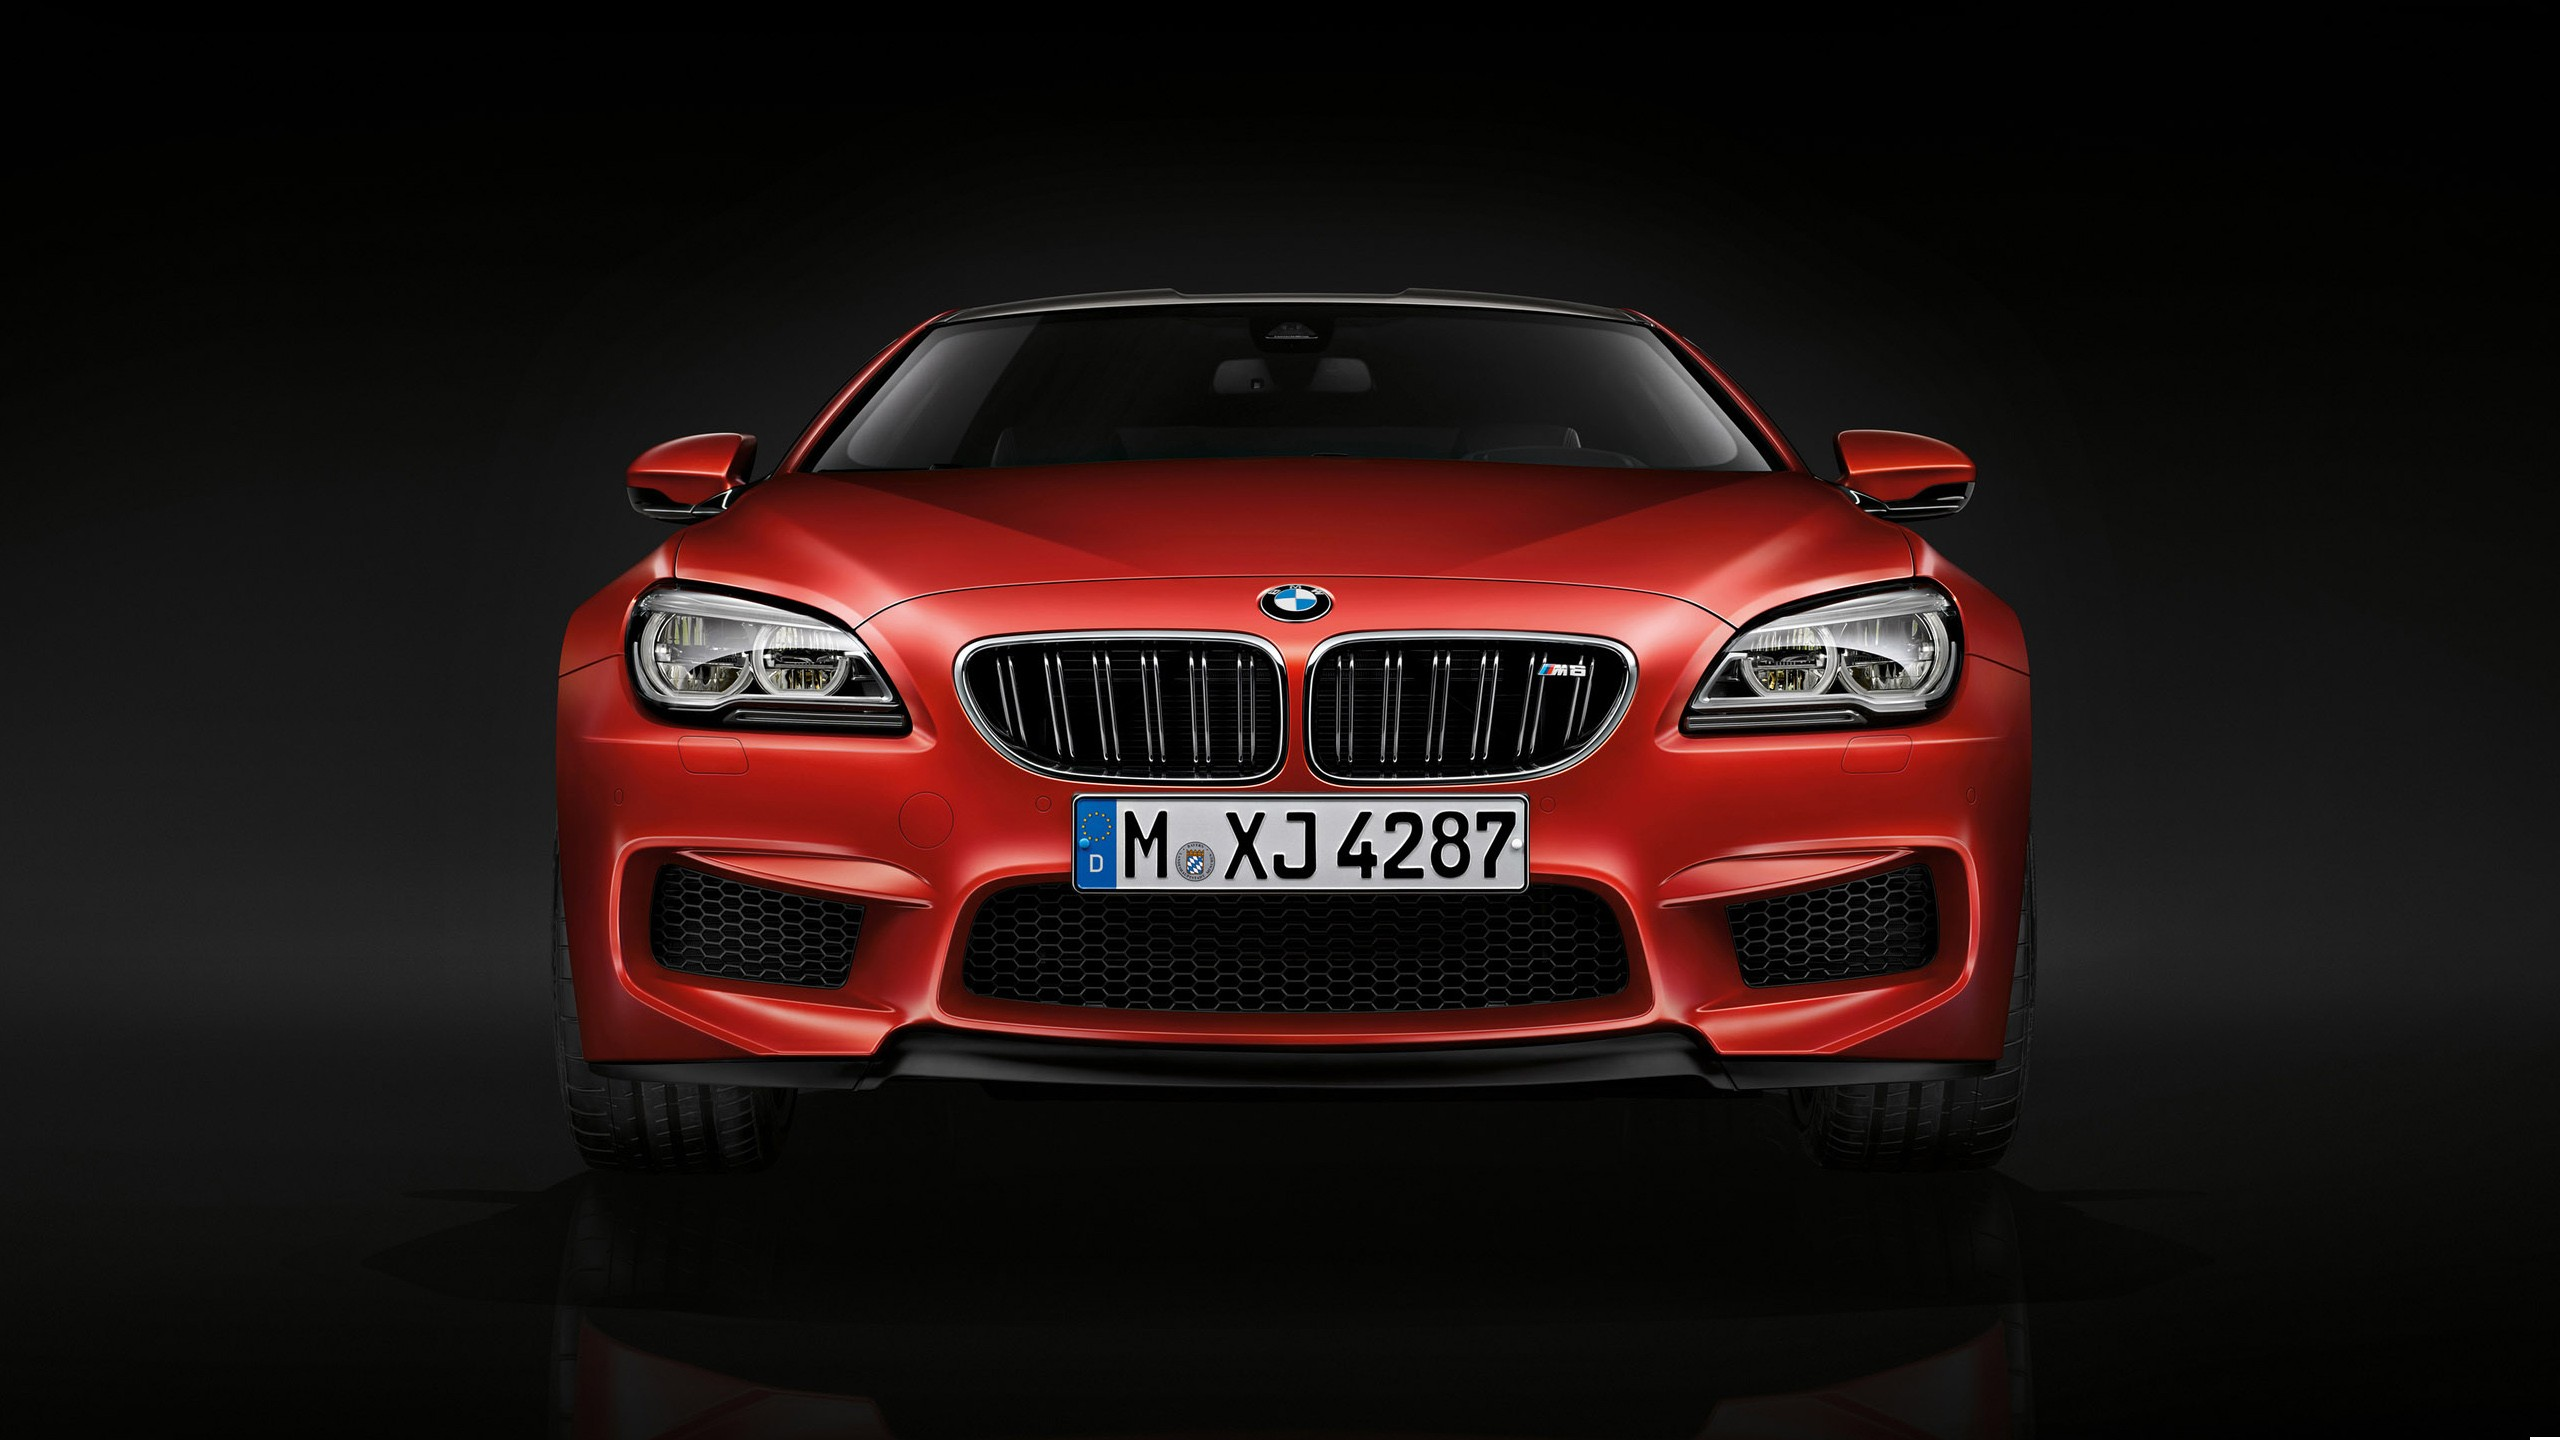 2015 Bmw M6 Competition Package Wallpaper Hd Car